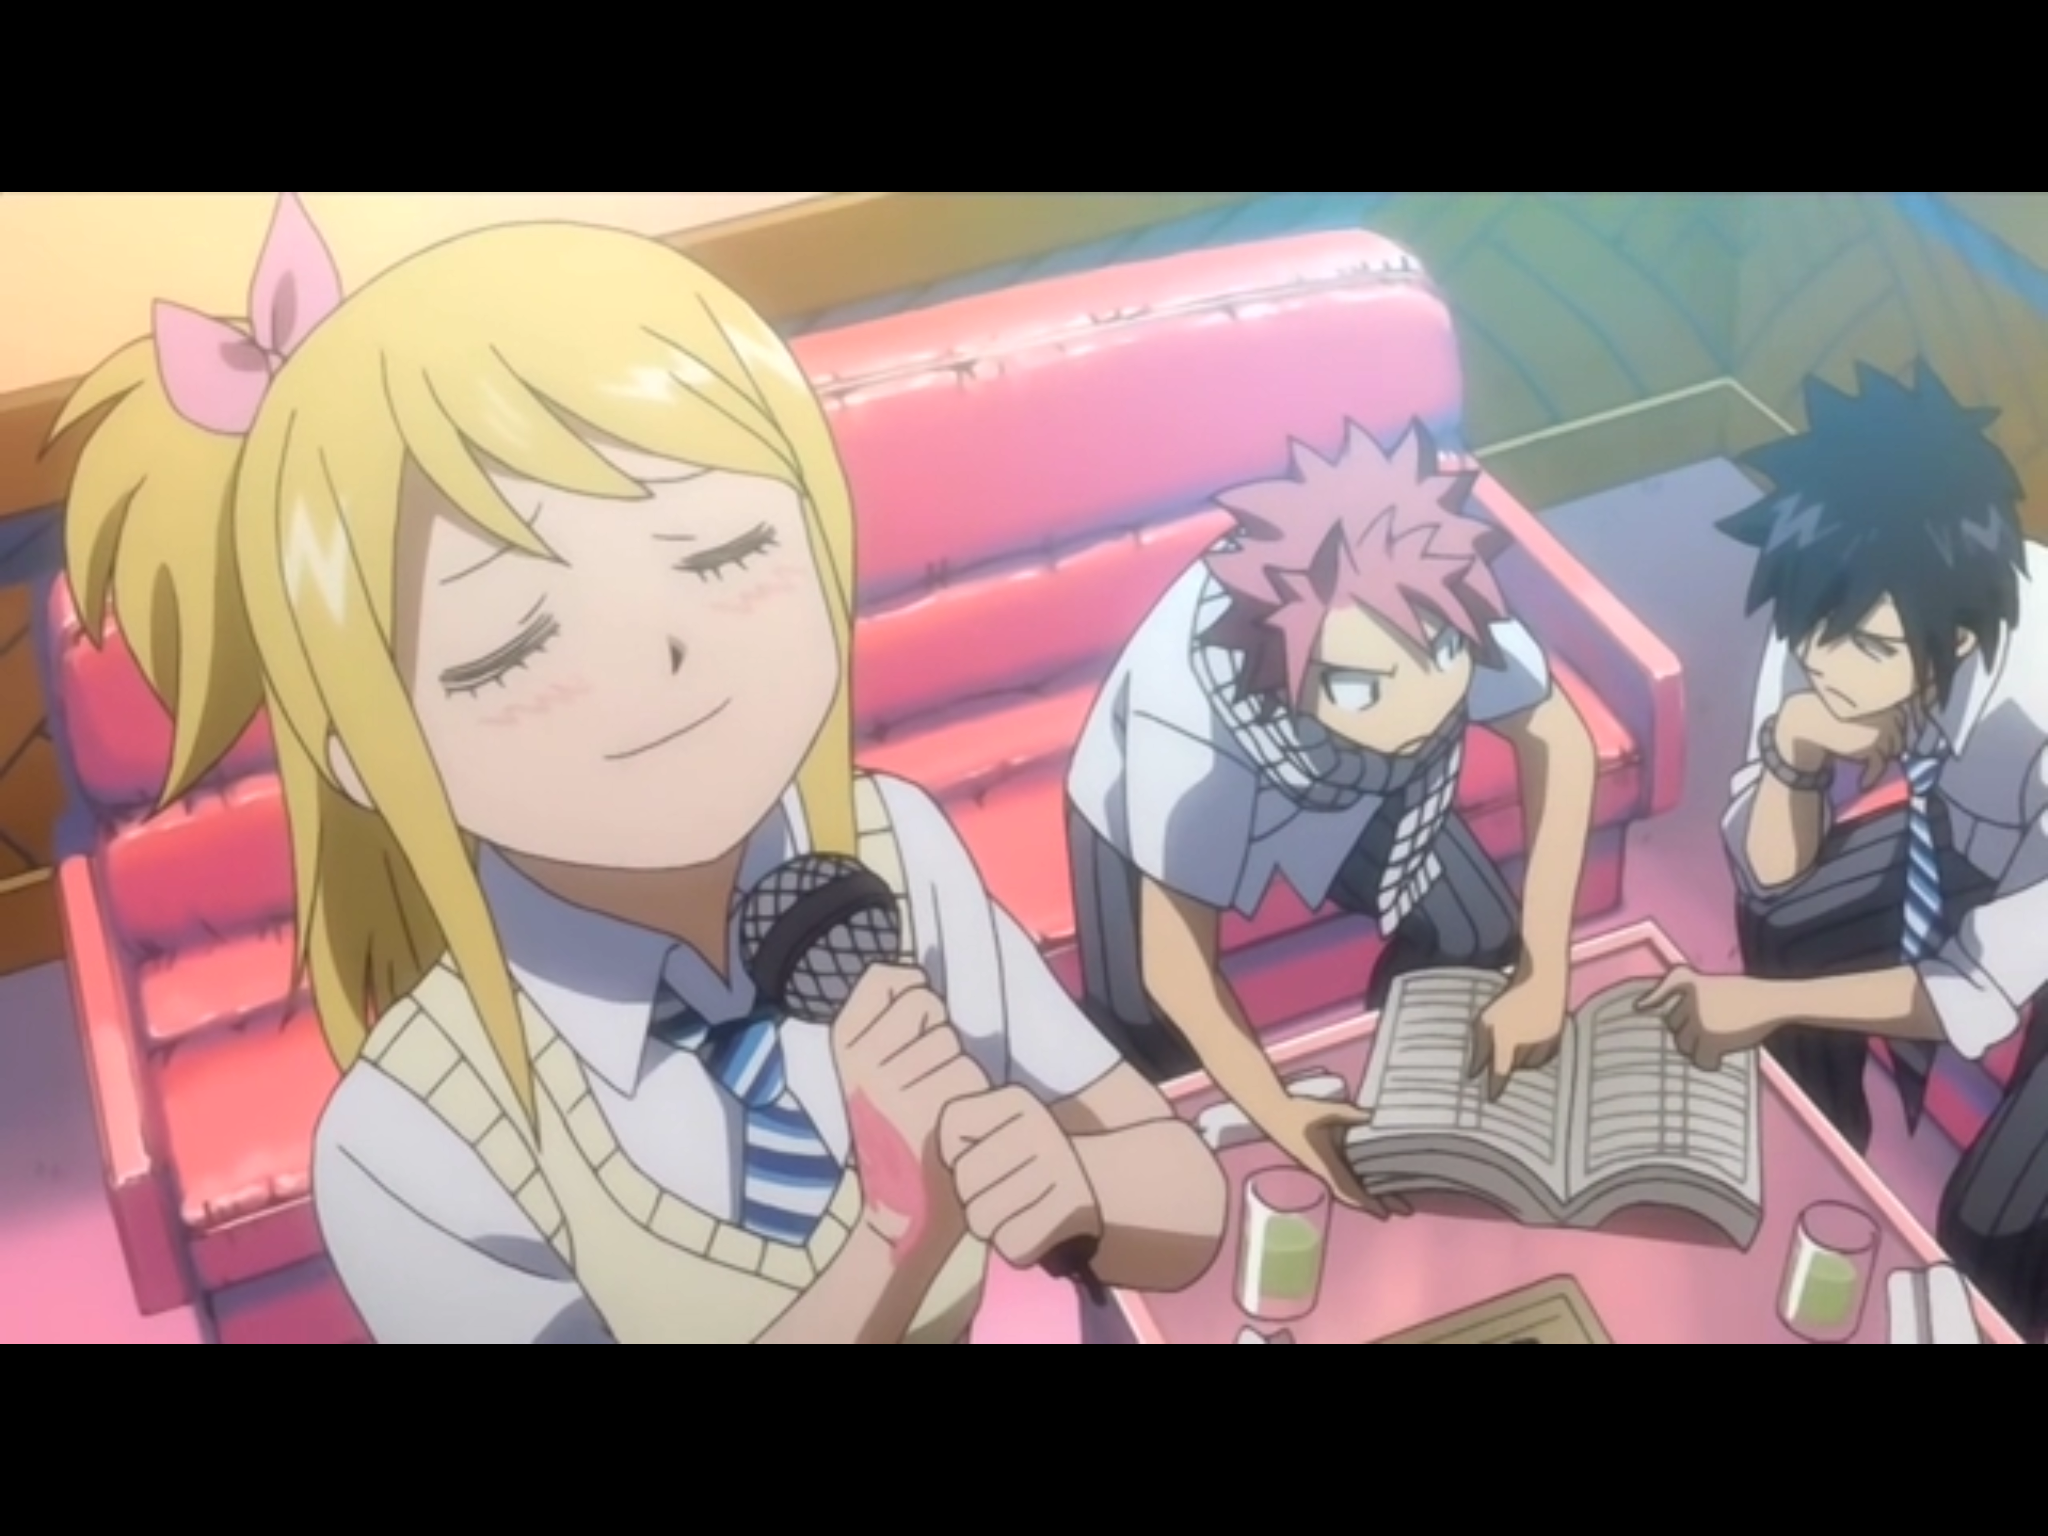 Pin by Lucy Quinn👑 on Fairy Tail Fairy tail amv, Fairy